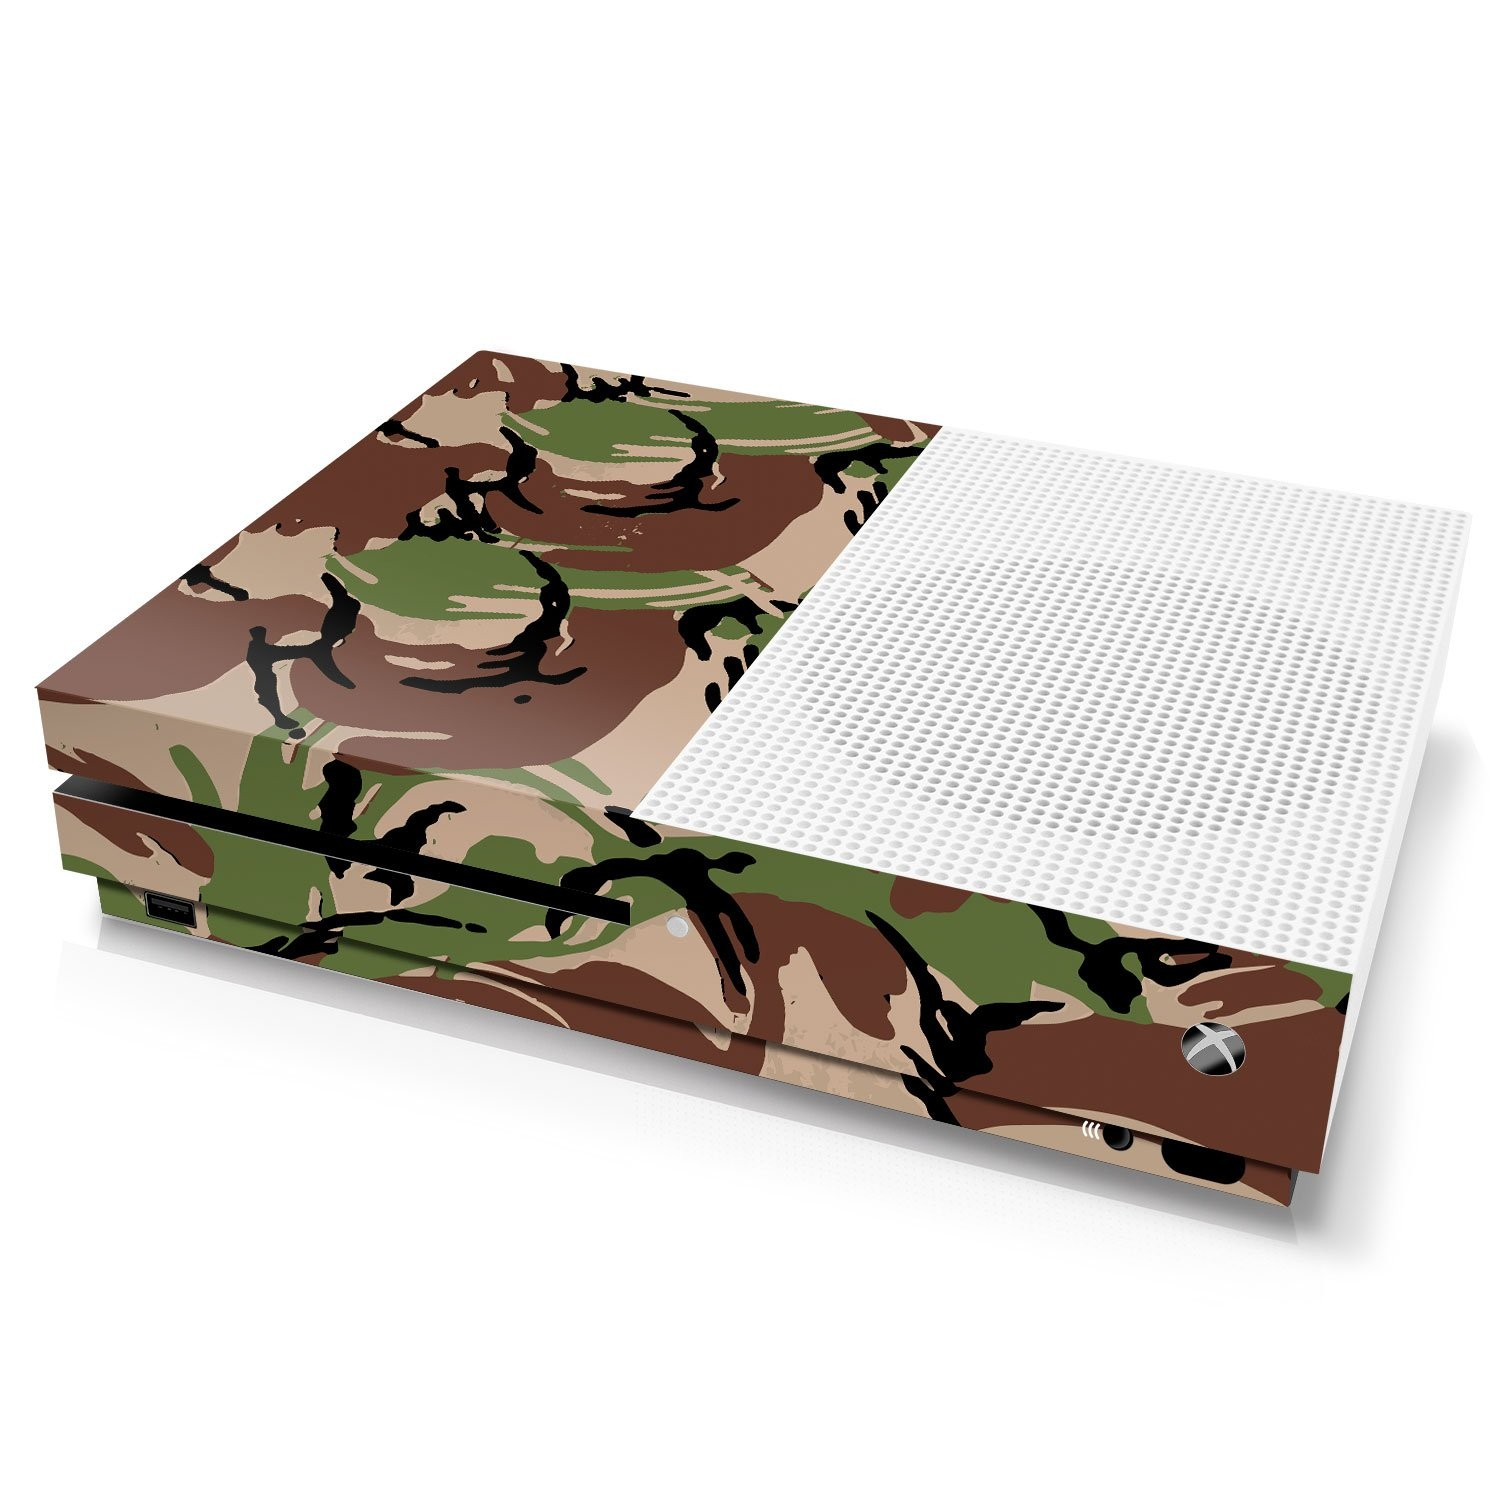 Xbox One S Console Skin - Camouflage: British DPM - Officially Licensed by Xbox